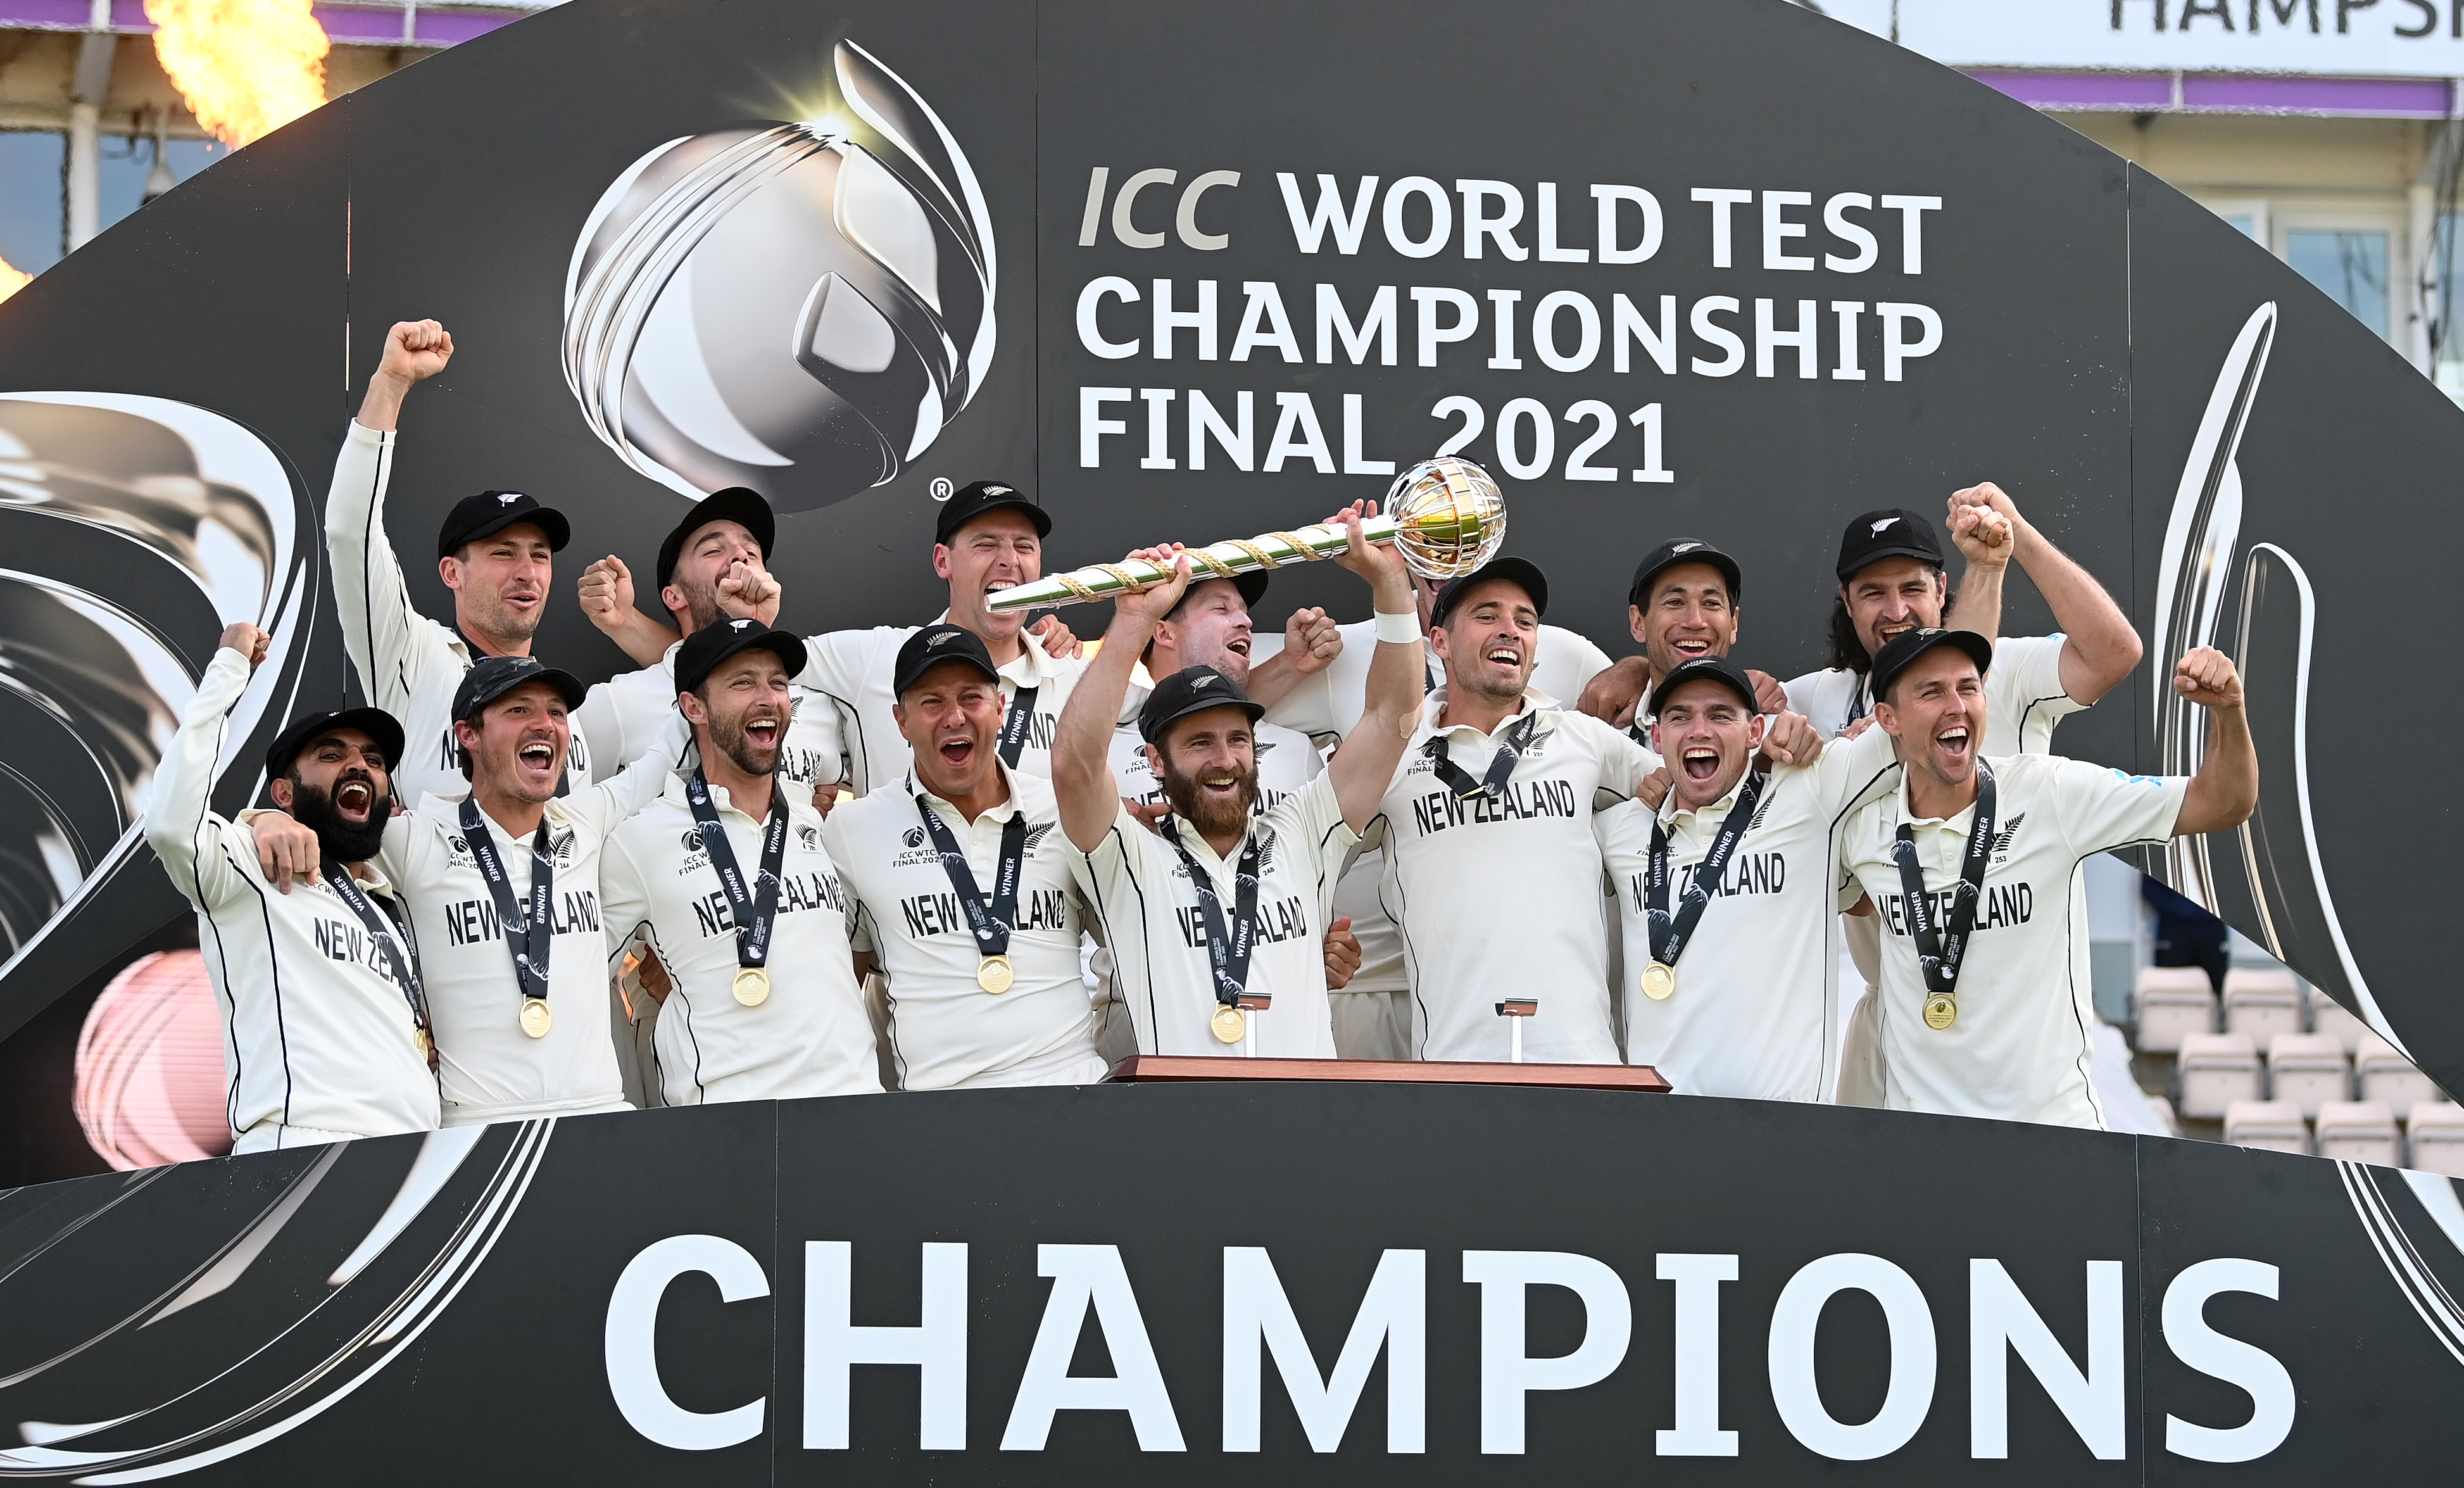 New Zealand triumphs over India to clinch the first World Test Championship